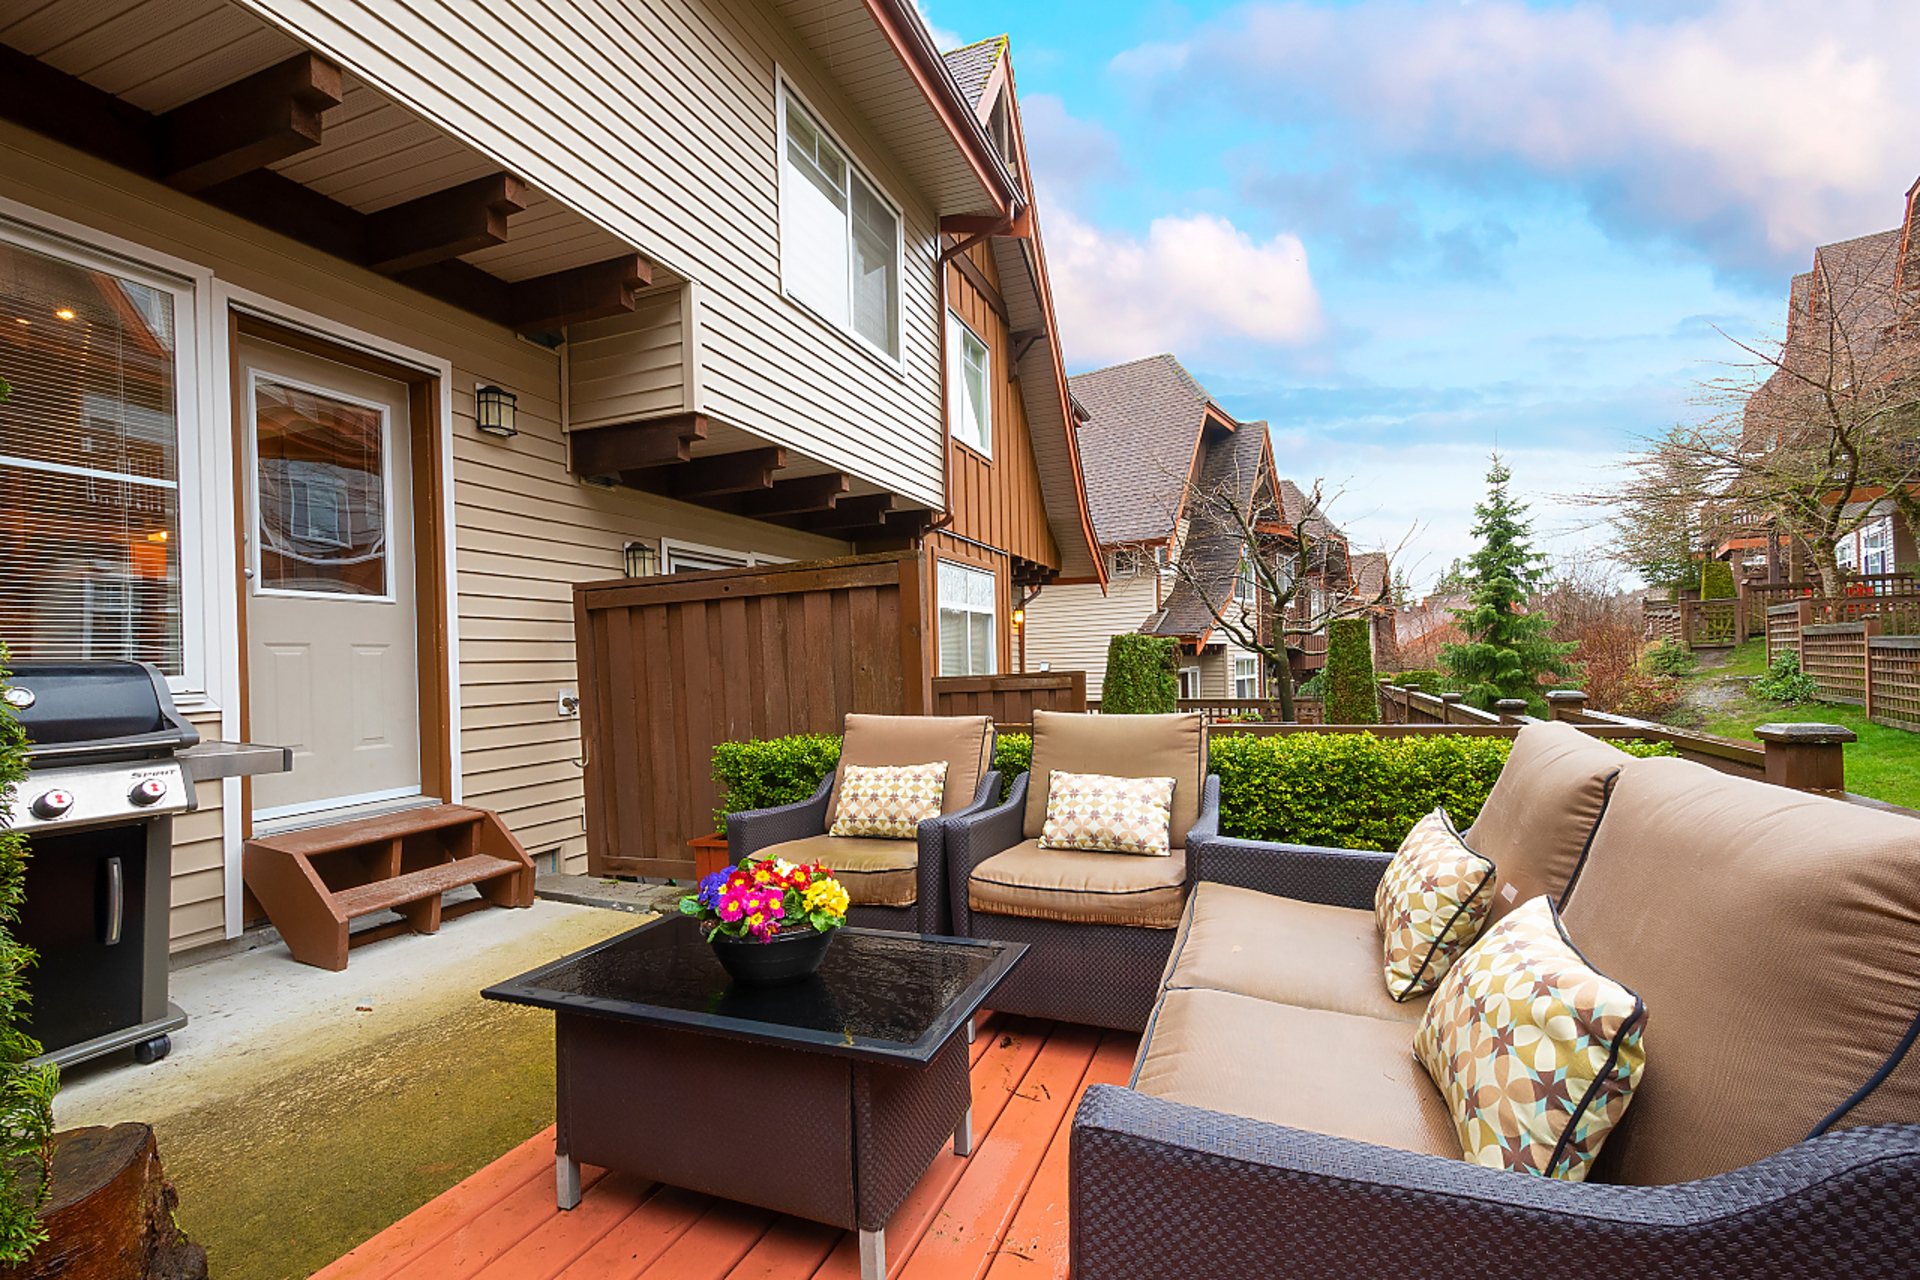 026 at 125 - 2000 Panorama Drive, Heritage Woods PM, Port Moody